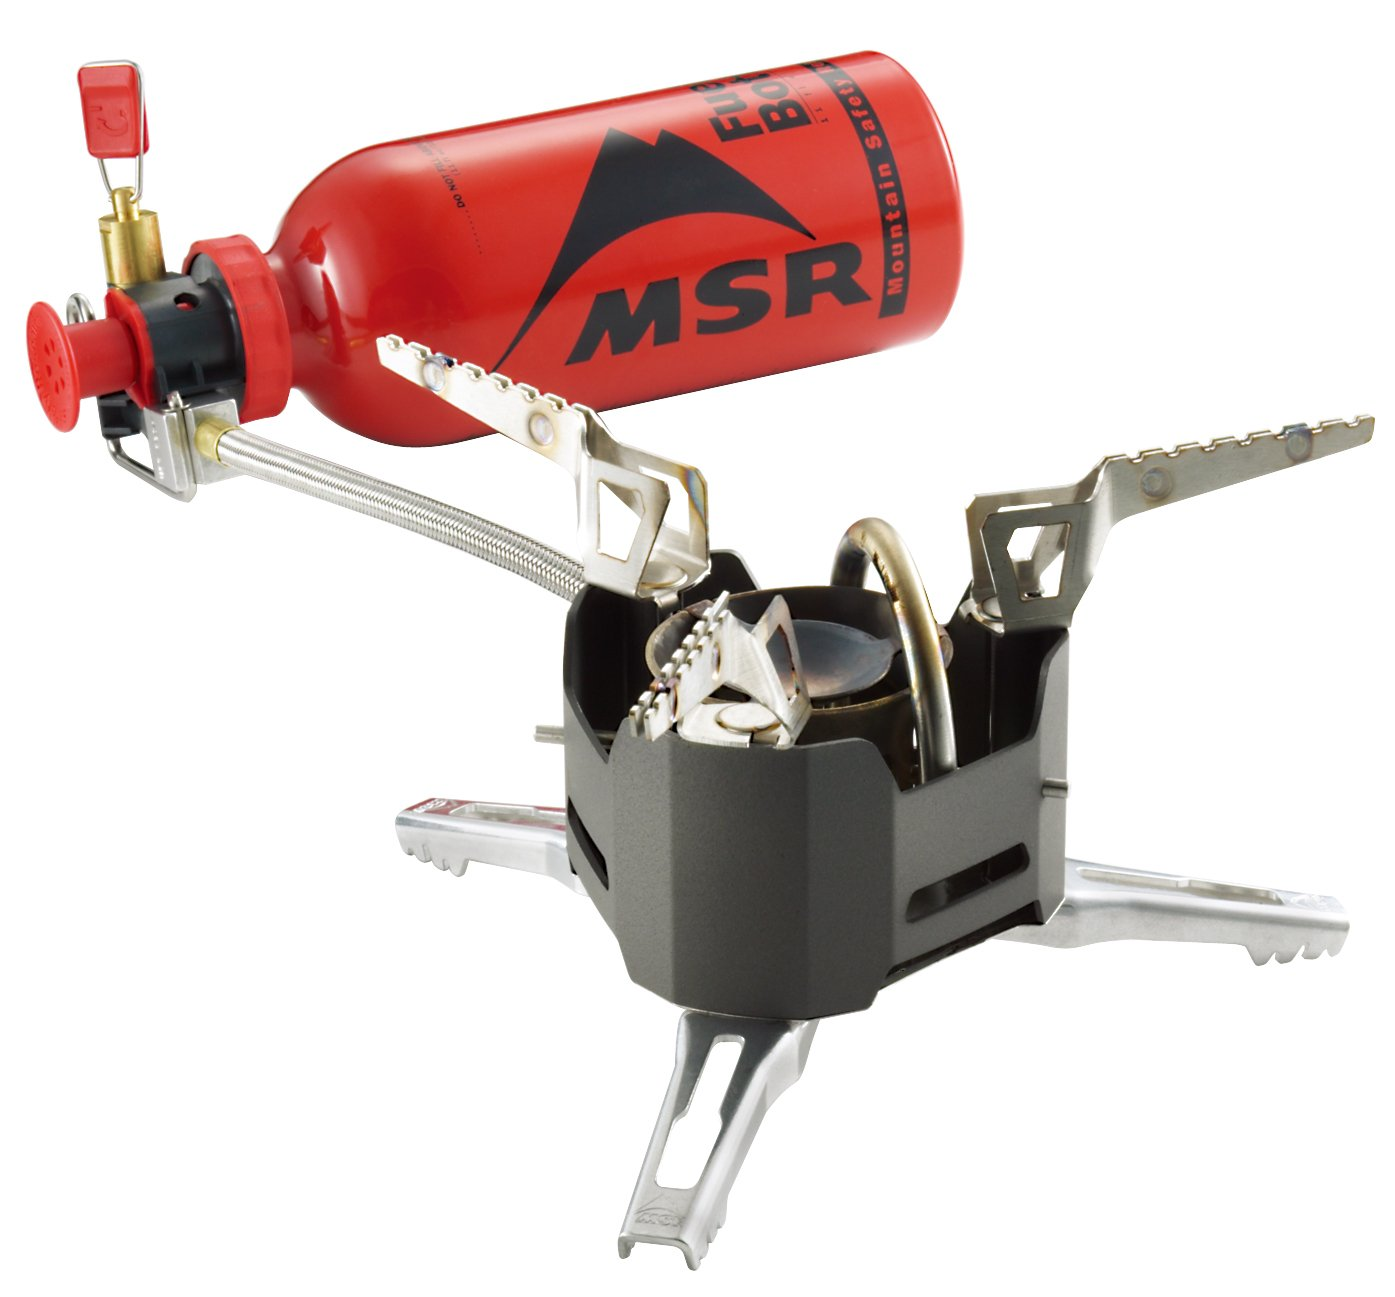 MSR XGK EX Extreme Condition Stove by MSR